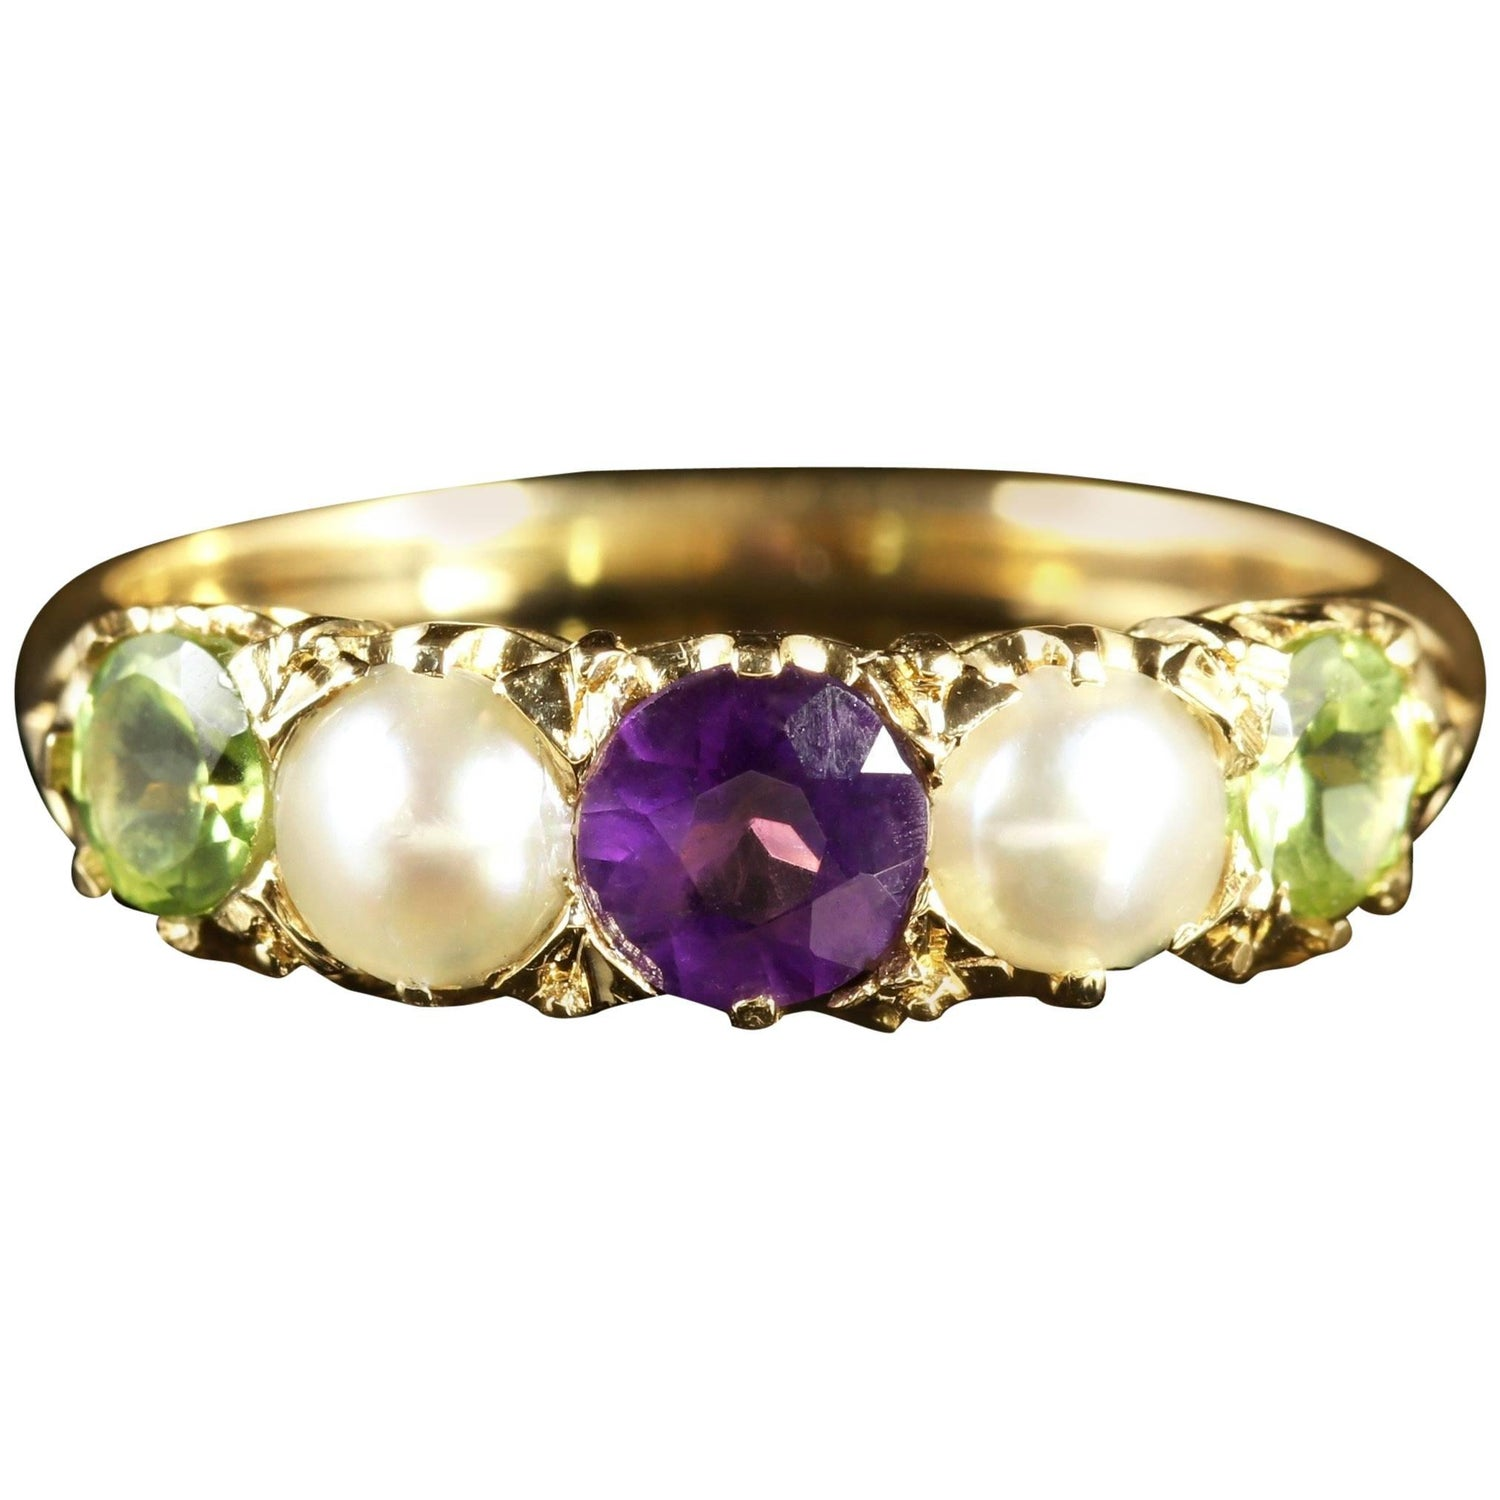 early 1900s rings 383 for sale at 1stdibs